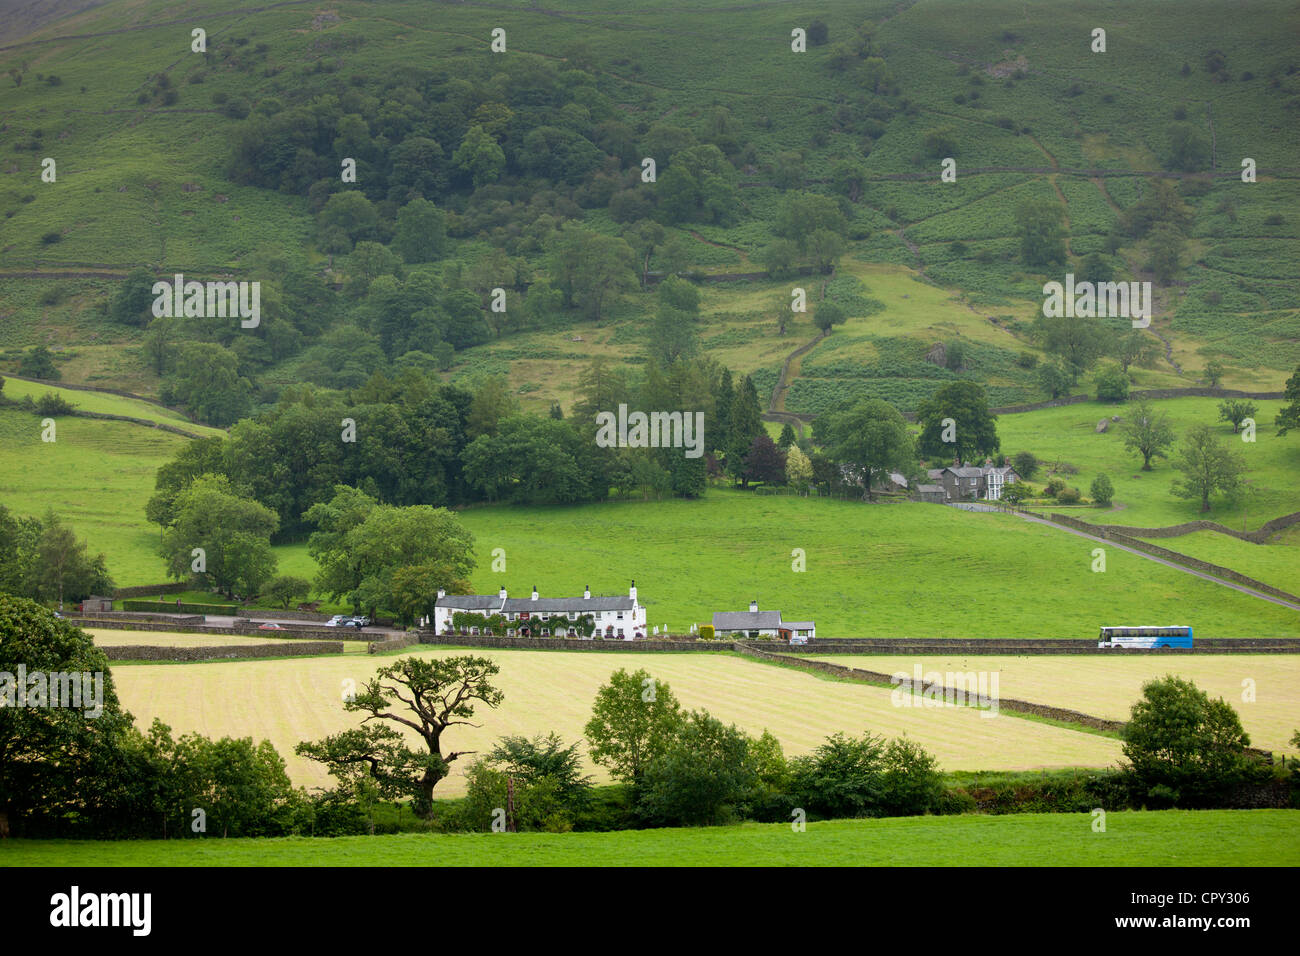 Travellers Rest pub hotel and tourist coach near Grasmere in the Lake District National Park, Cumbria, UK - Stock Image